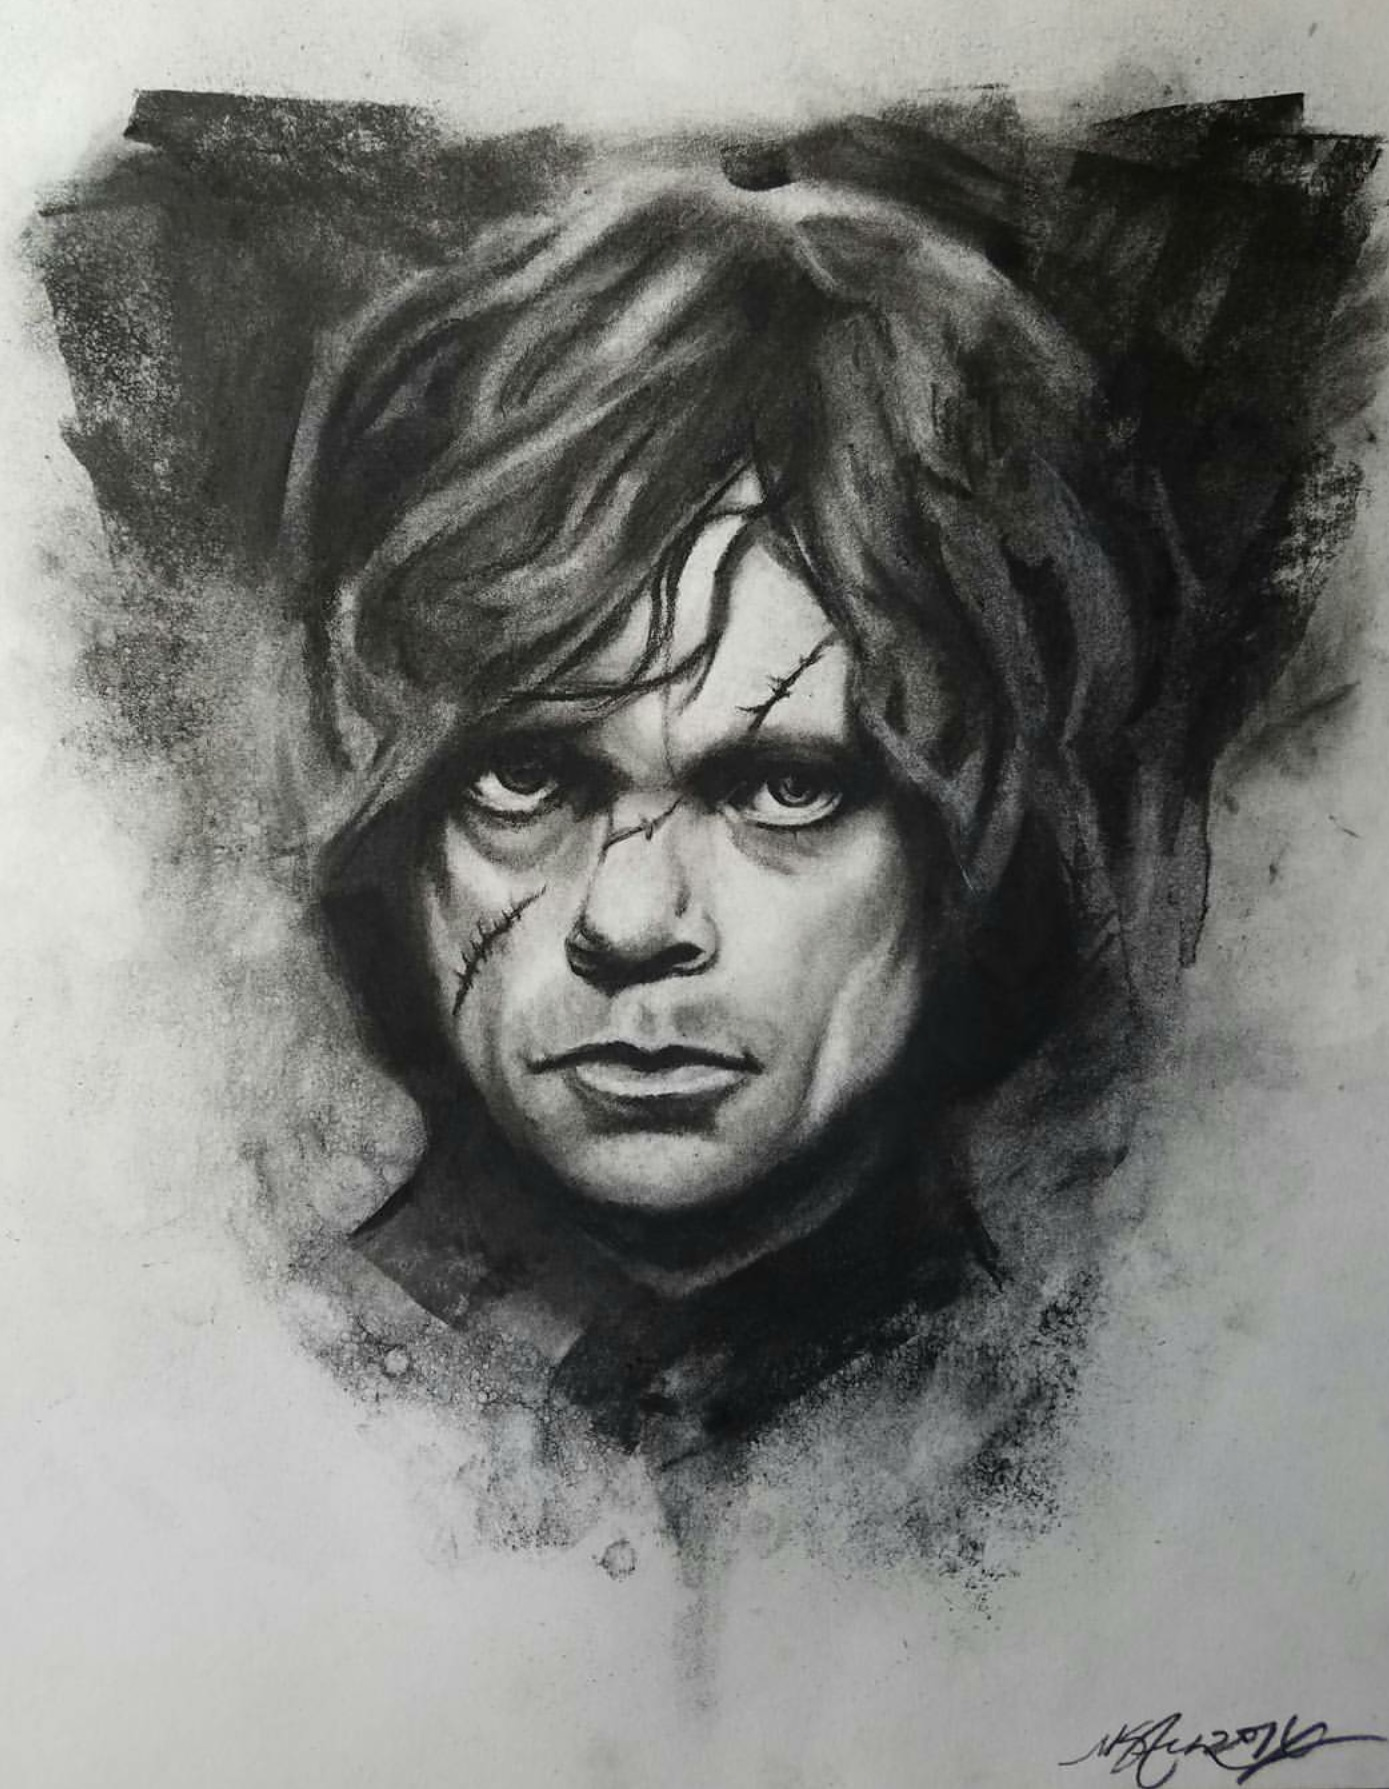 """Tyrion Lannister"" 2016 - Charcoal on Stonehenge 11x14 in."